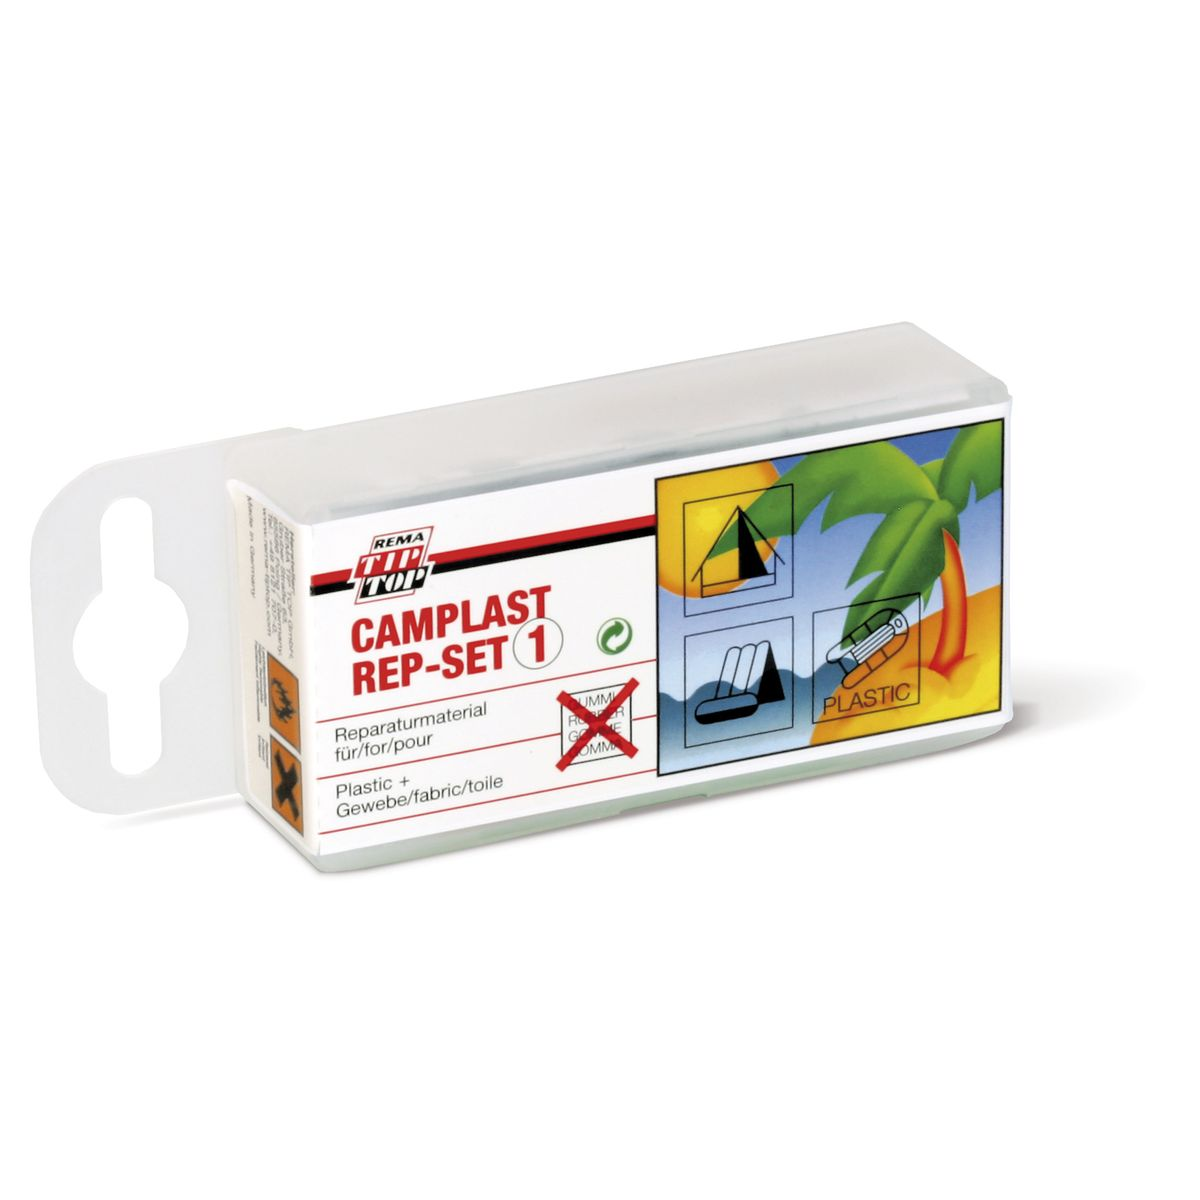 Camplast Mini puncture repair kit